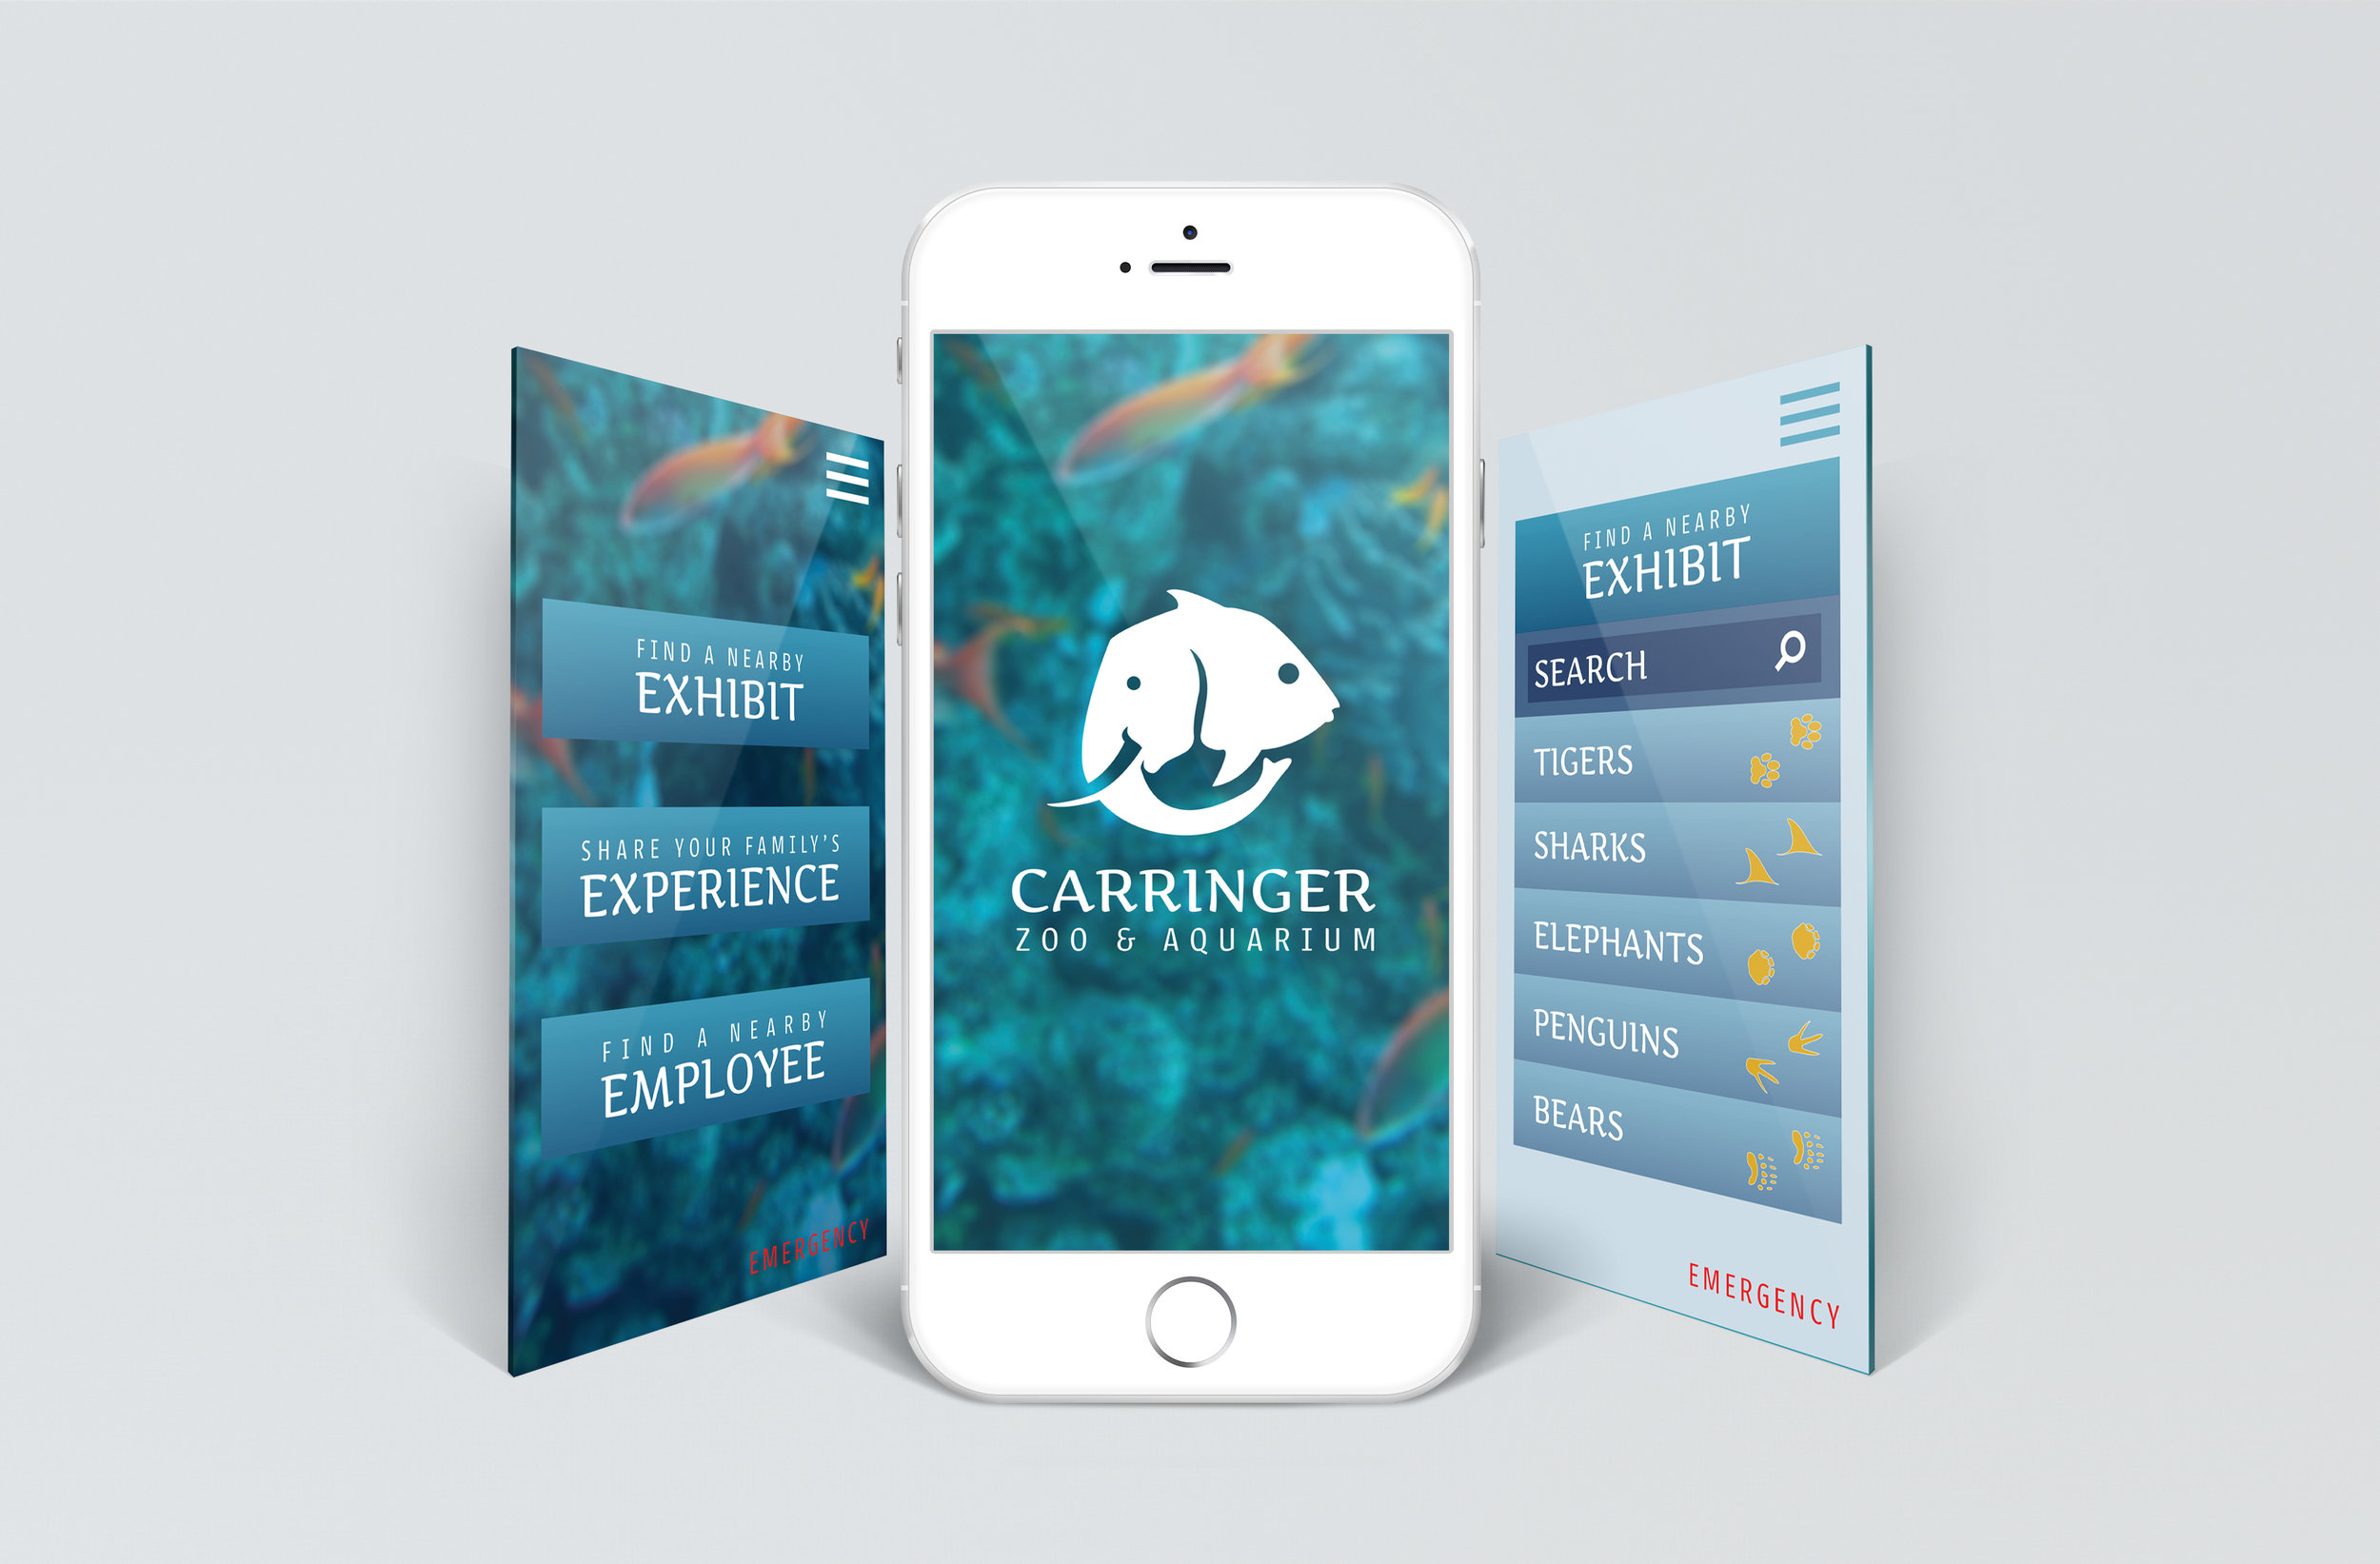 Carringer Zoo and Aquarium app to help visitors find specific attractions and report emergencies to the nearest employee.